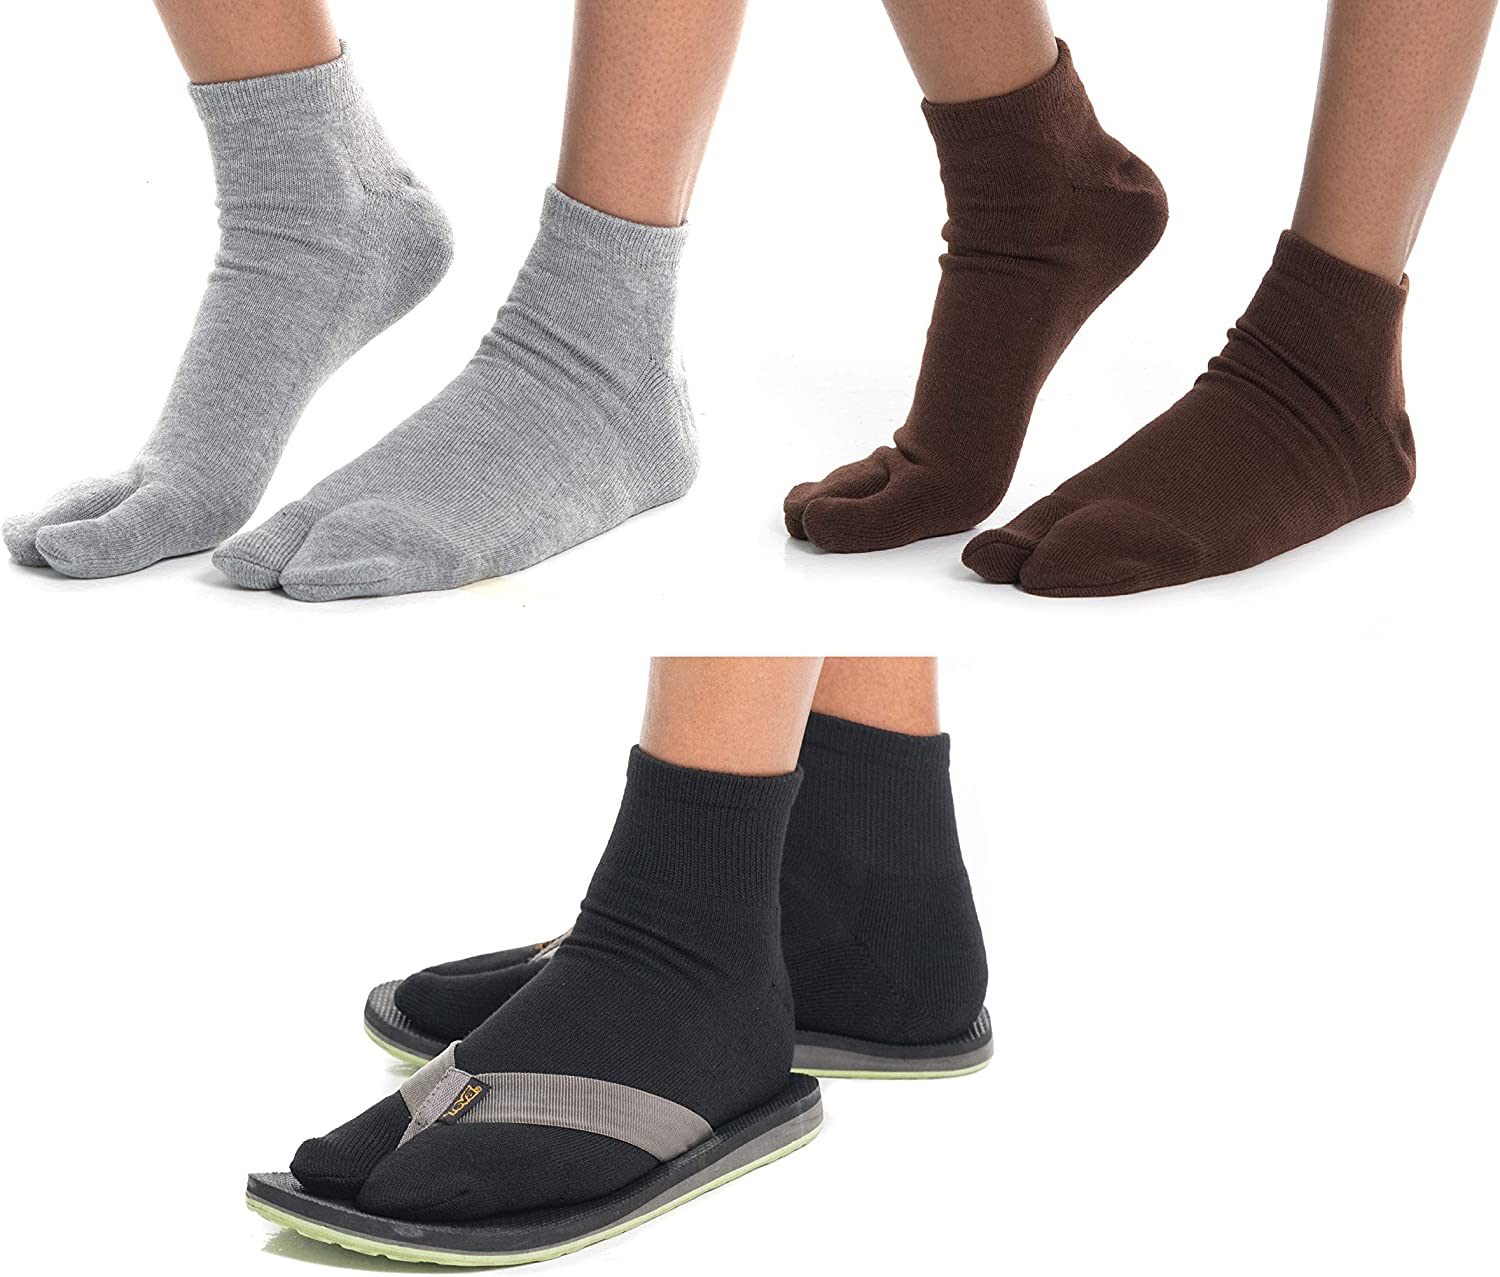 3 Pairs Flip-Flop Thicker Tabi V-Toe Big Toe Ankle Socks Warm Comfortable Cotton Polyester Spandex Blend